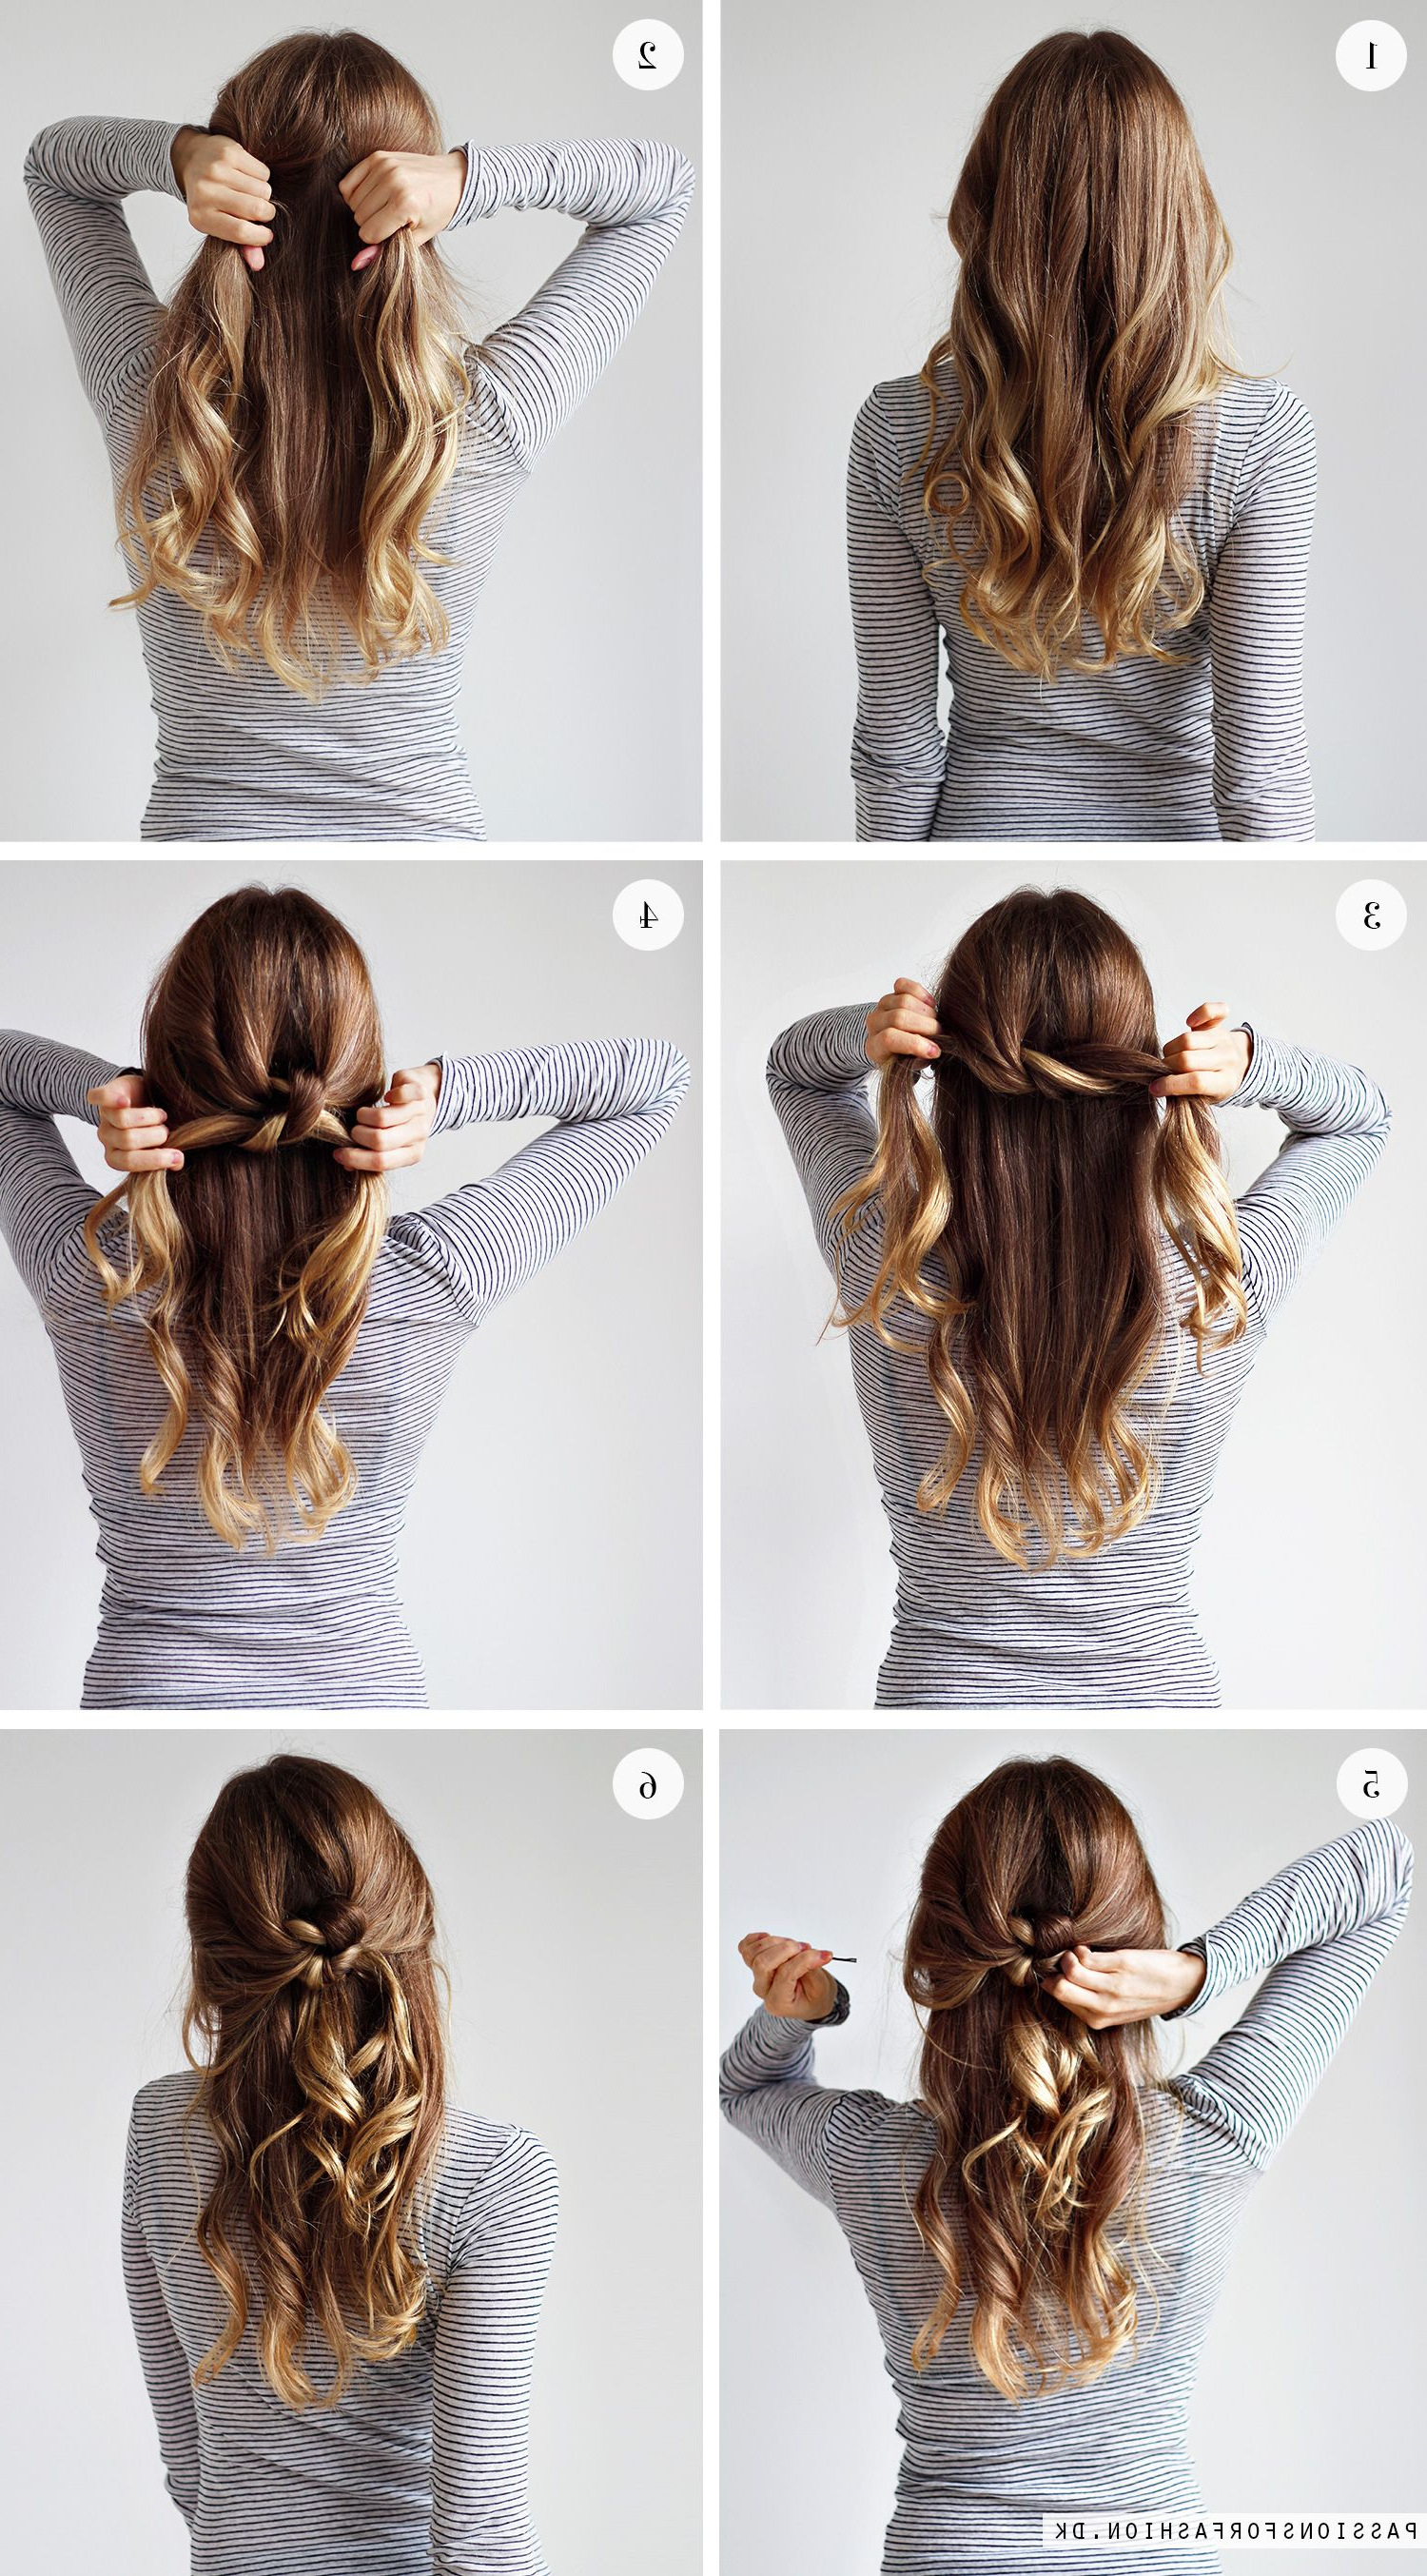 Preferred Tie It Up Updo Hairstyles Inside Weekly Hairstyle: Tie A Knot (Christina Dueholm) (View 15 of 20)